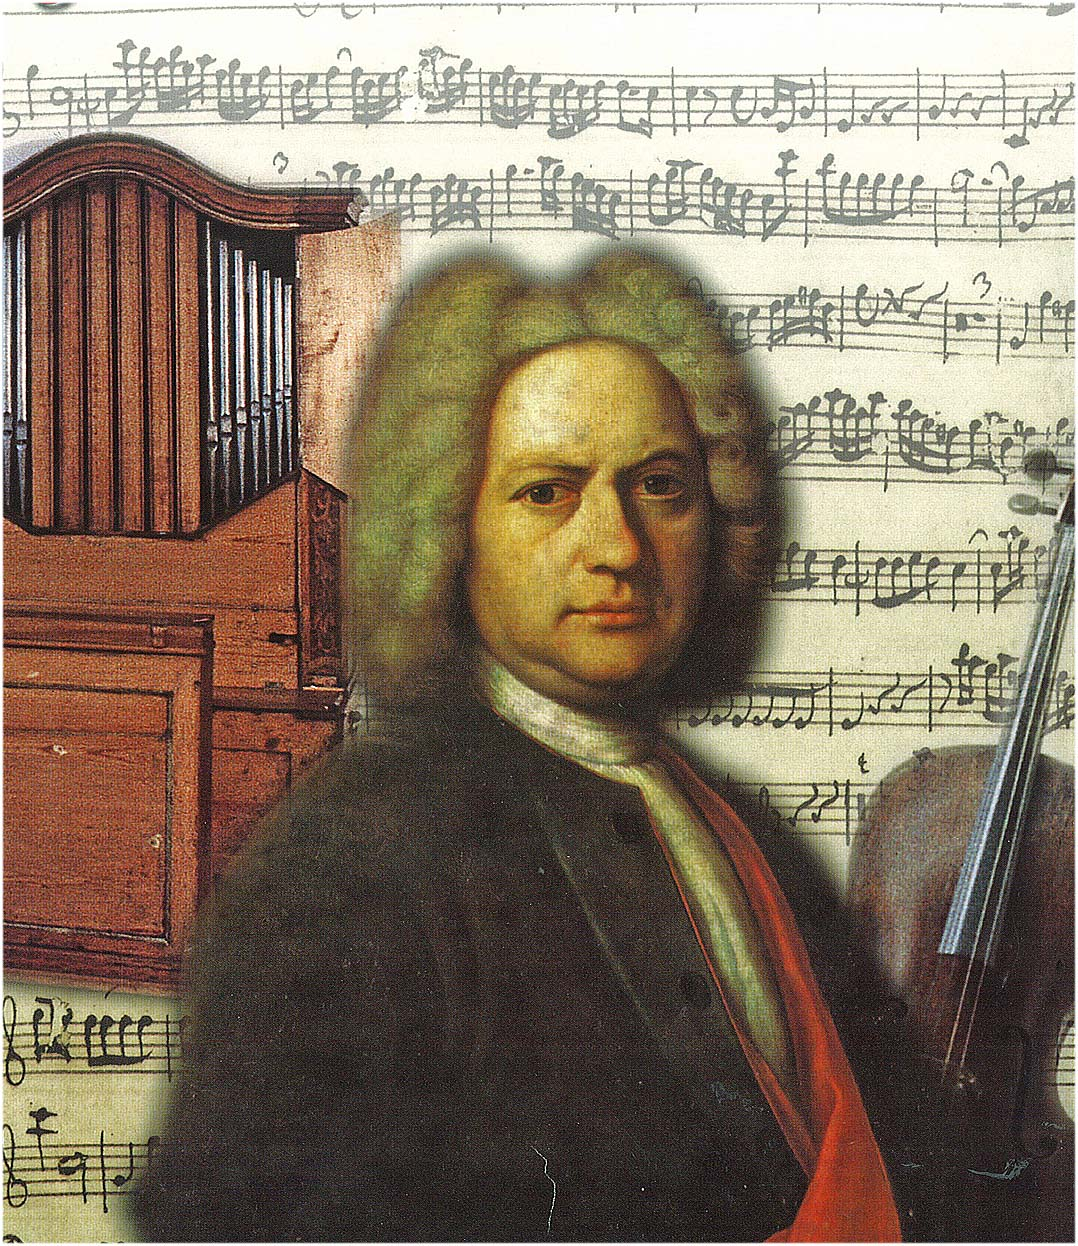 Bach Tour Germany - In The Footsteps of J.S. Bach